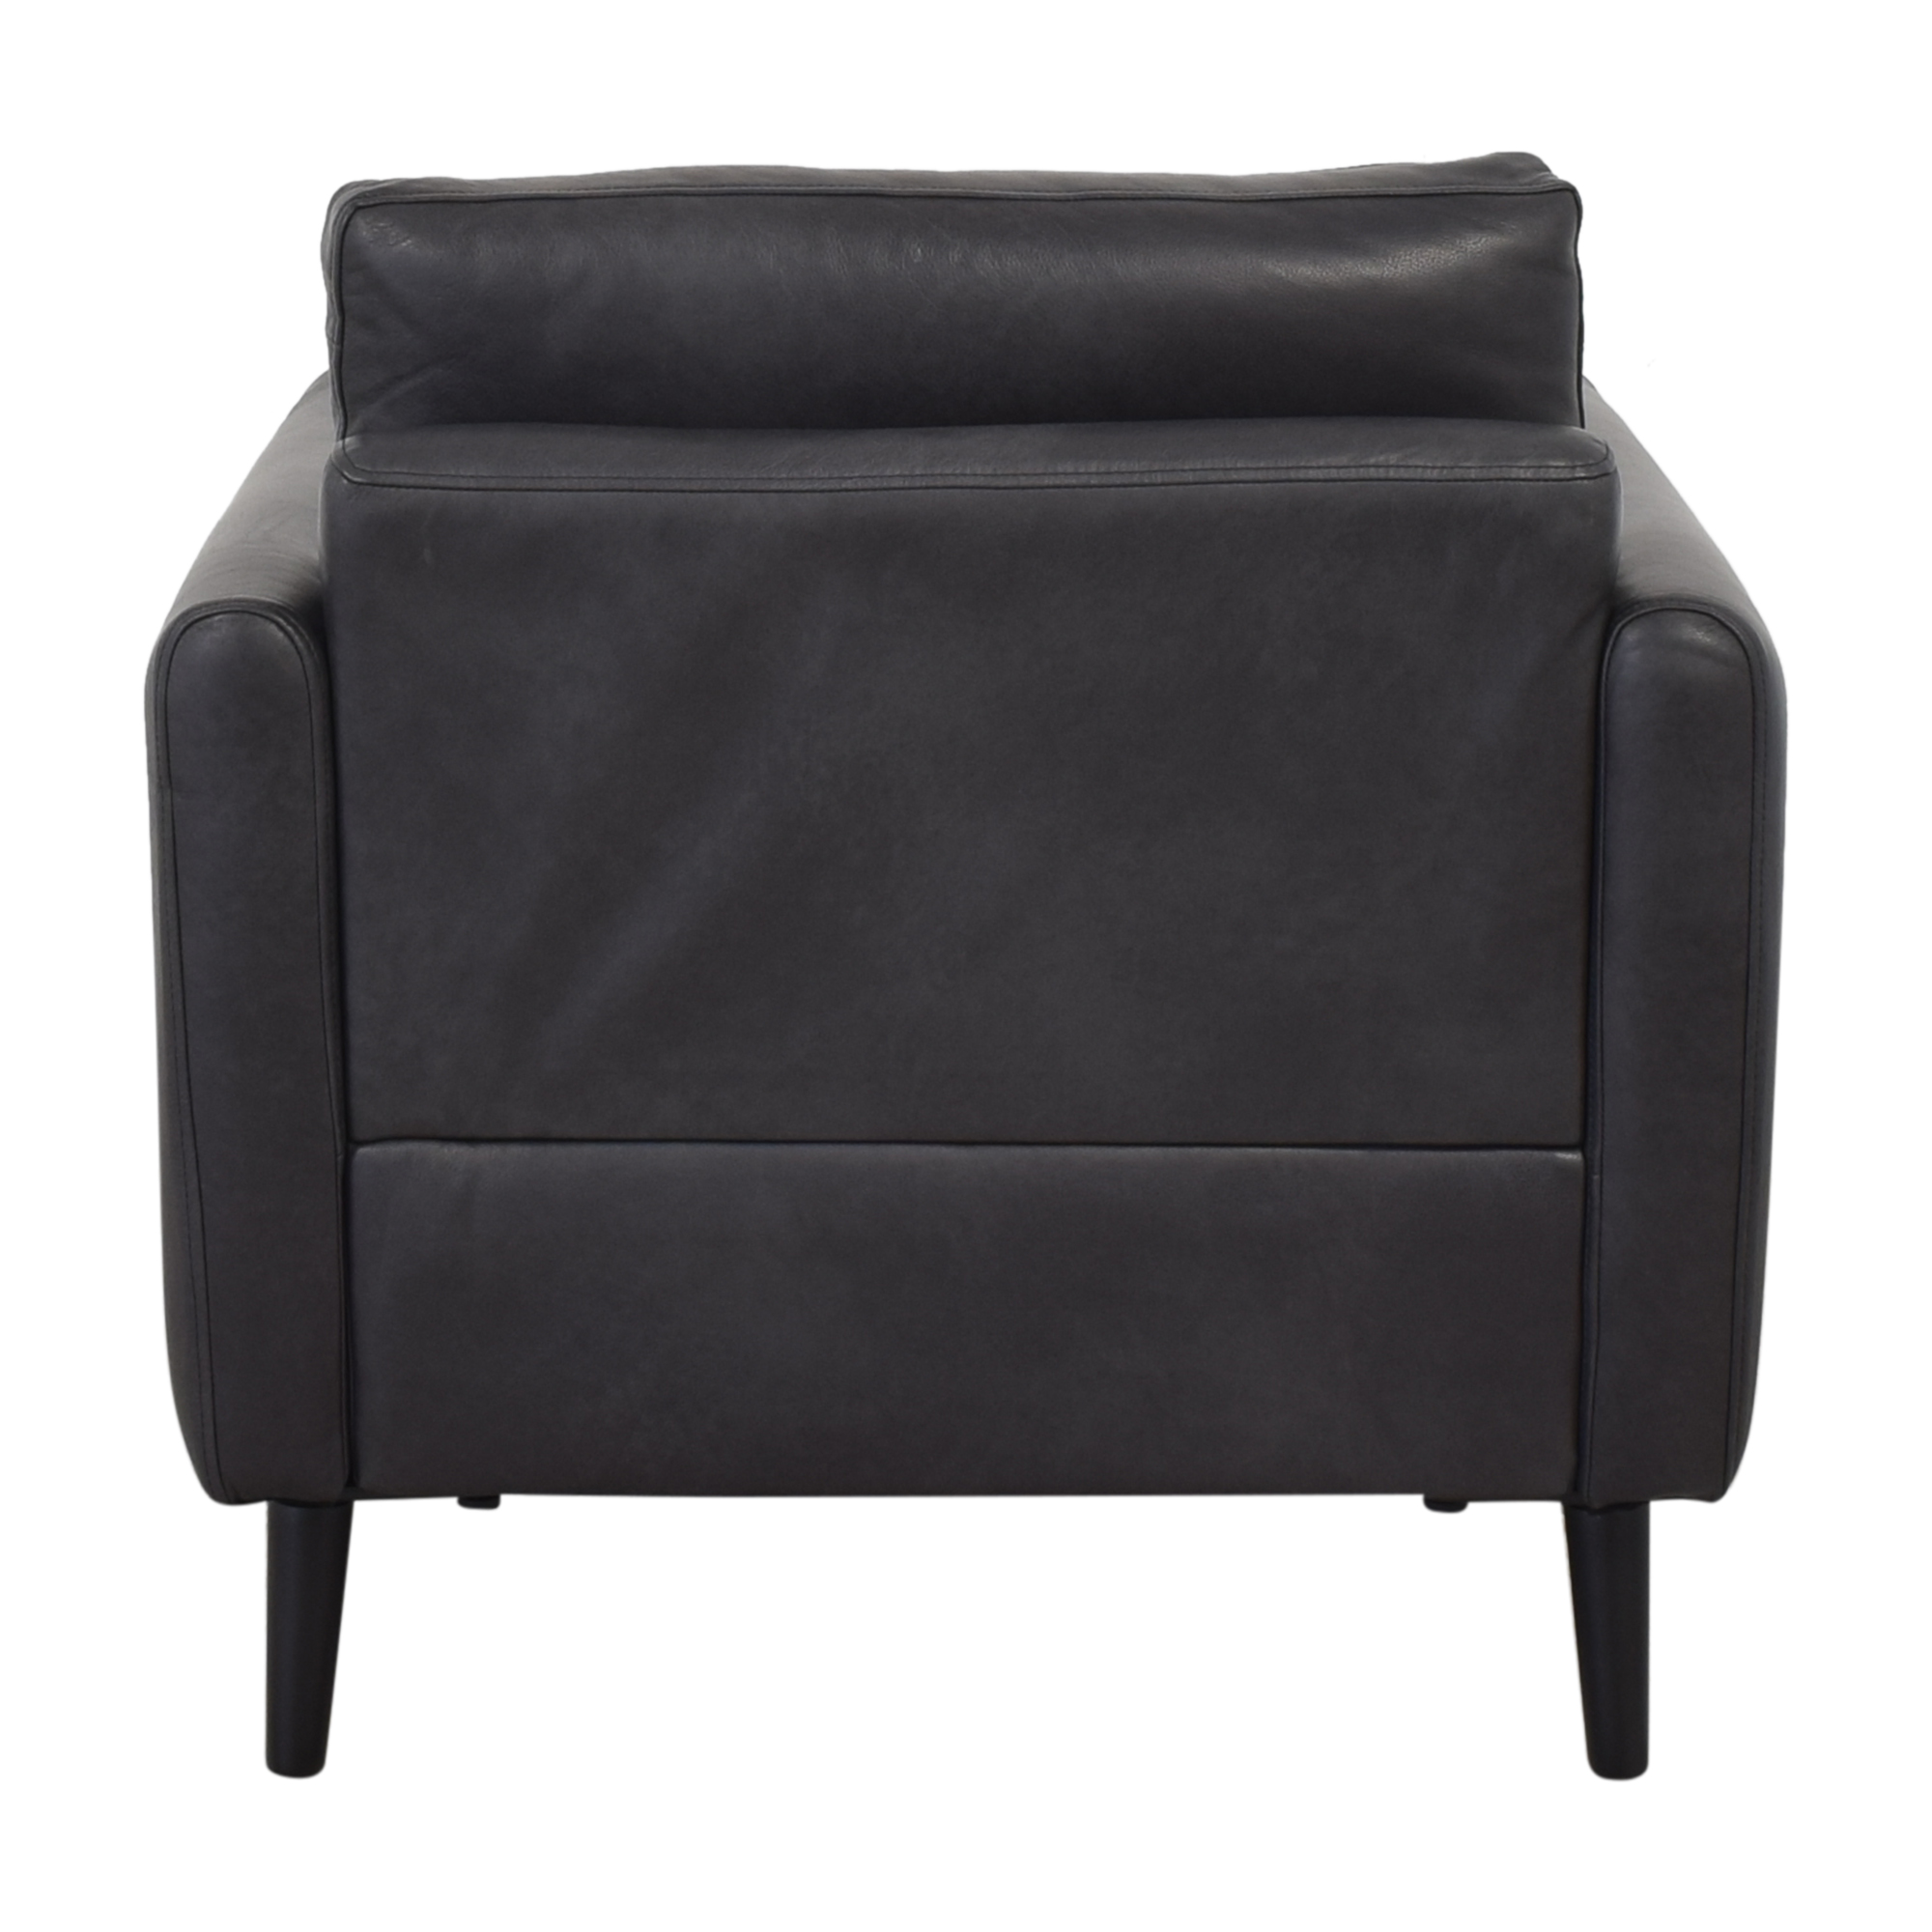 buy Burrow Burrow Arch Nomad Club Chair with Ottoman online